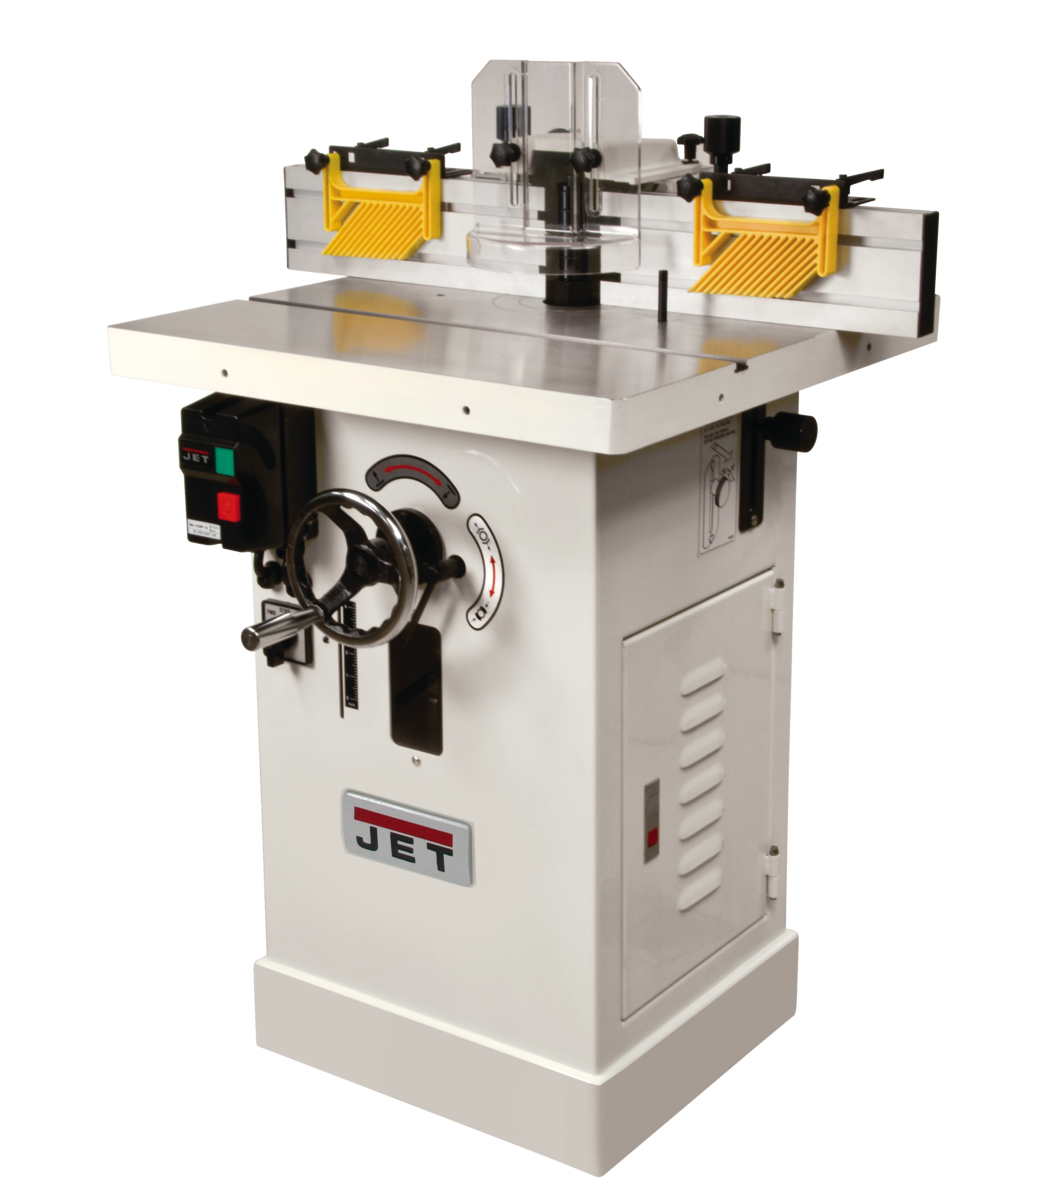 JWS-25X, JET Shaper, 3HP, 1PH